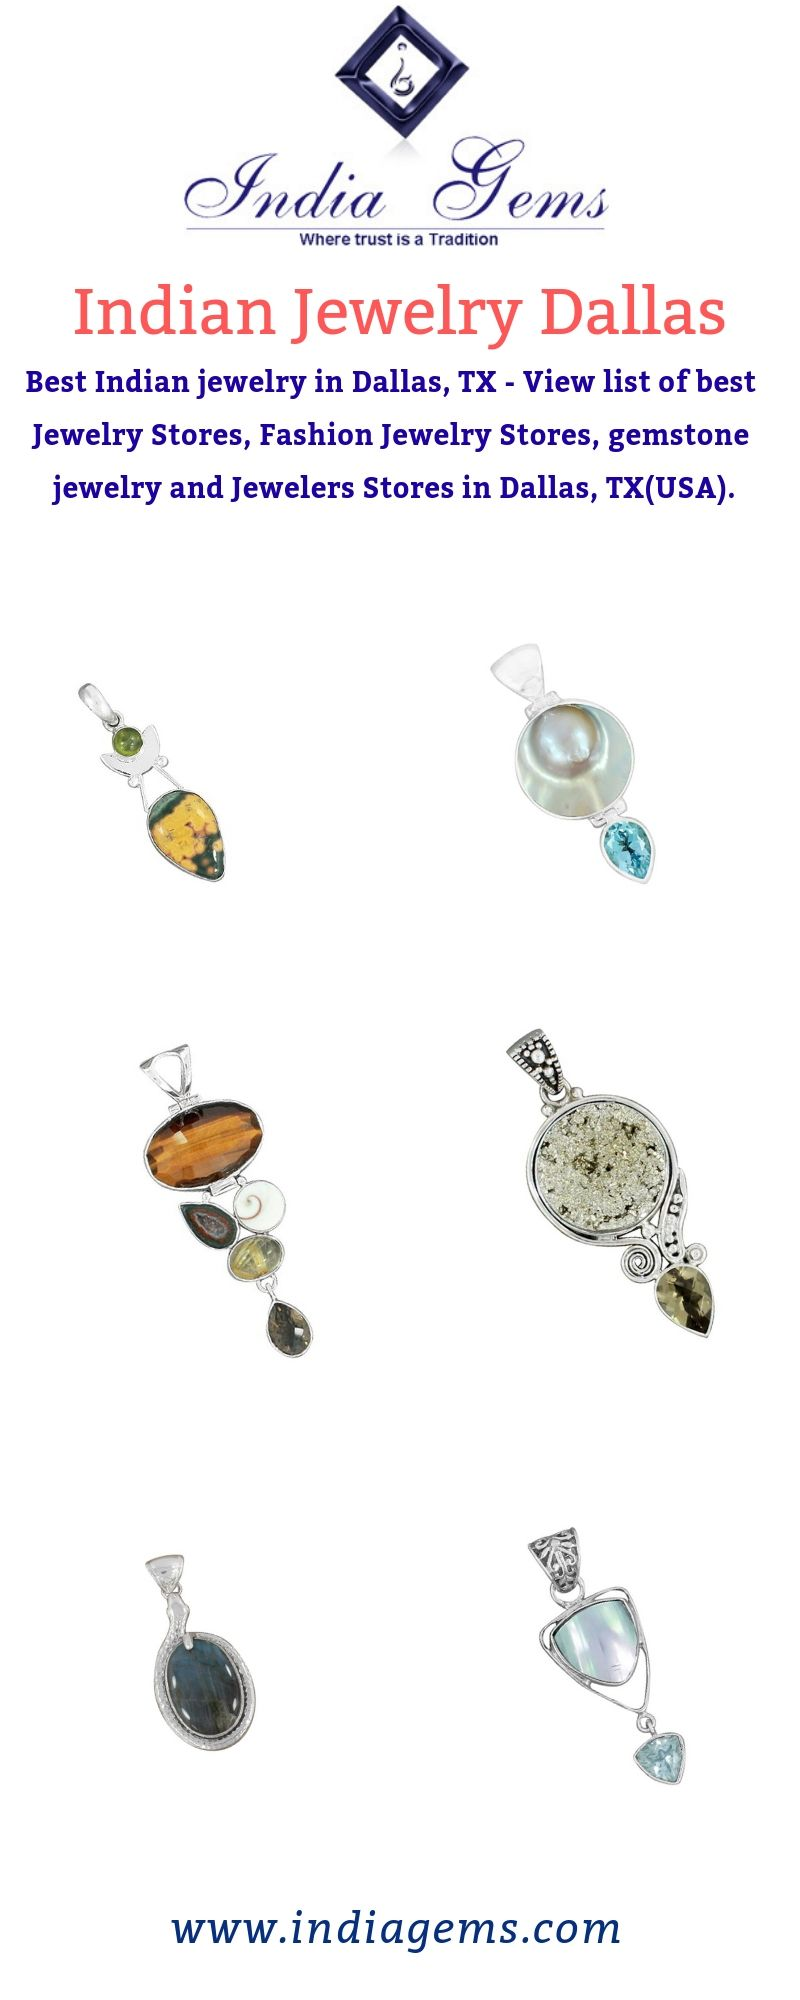 Dallas Indian Jewelry Stores : dallas, indian, jewelry, stores, Indian, Jewelry, Dallas, Fashion, Stores,, Jewellery,, Stores